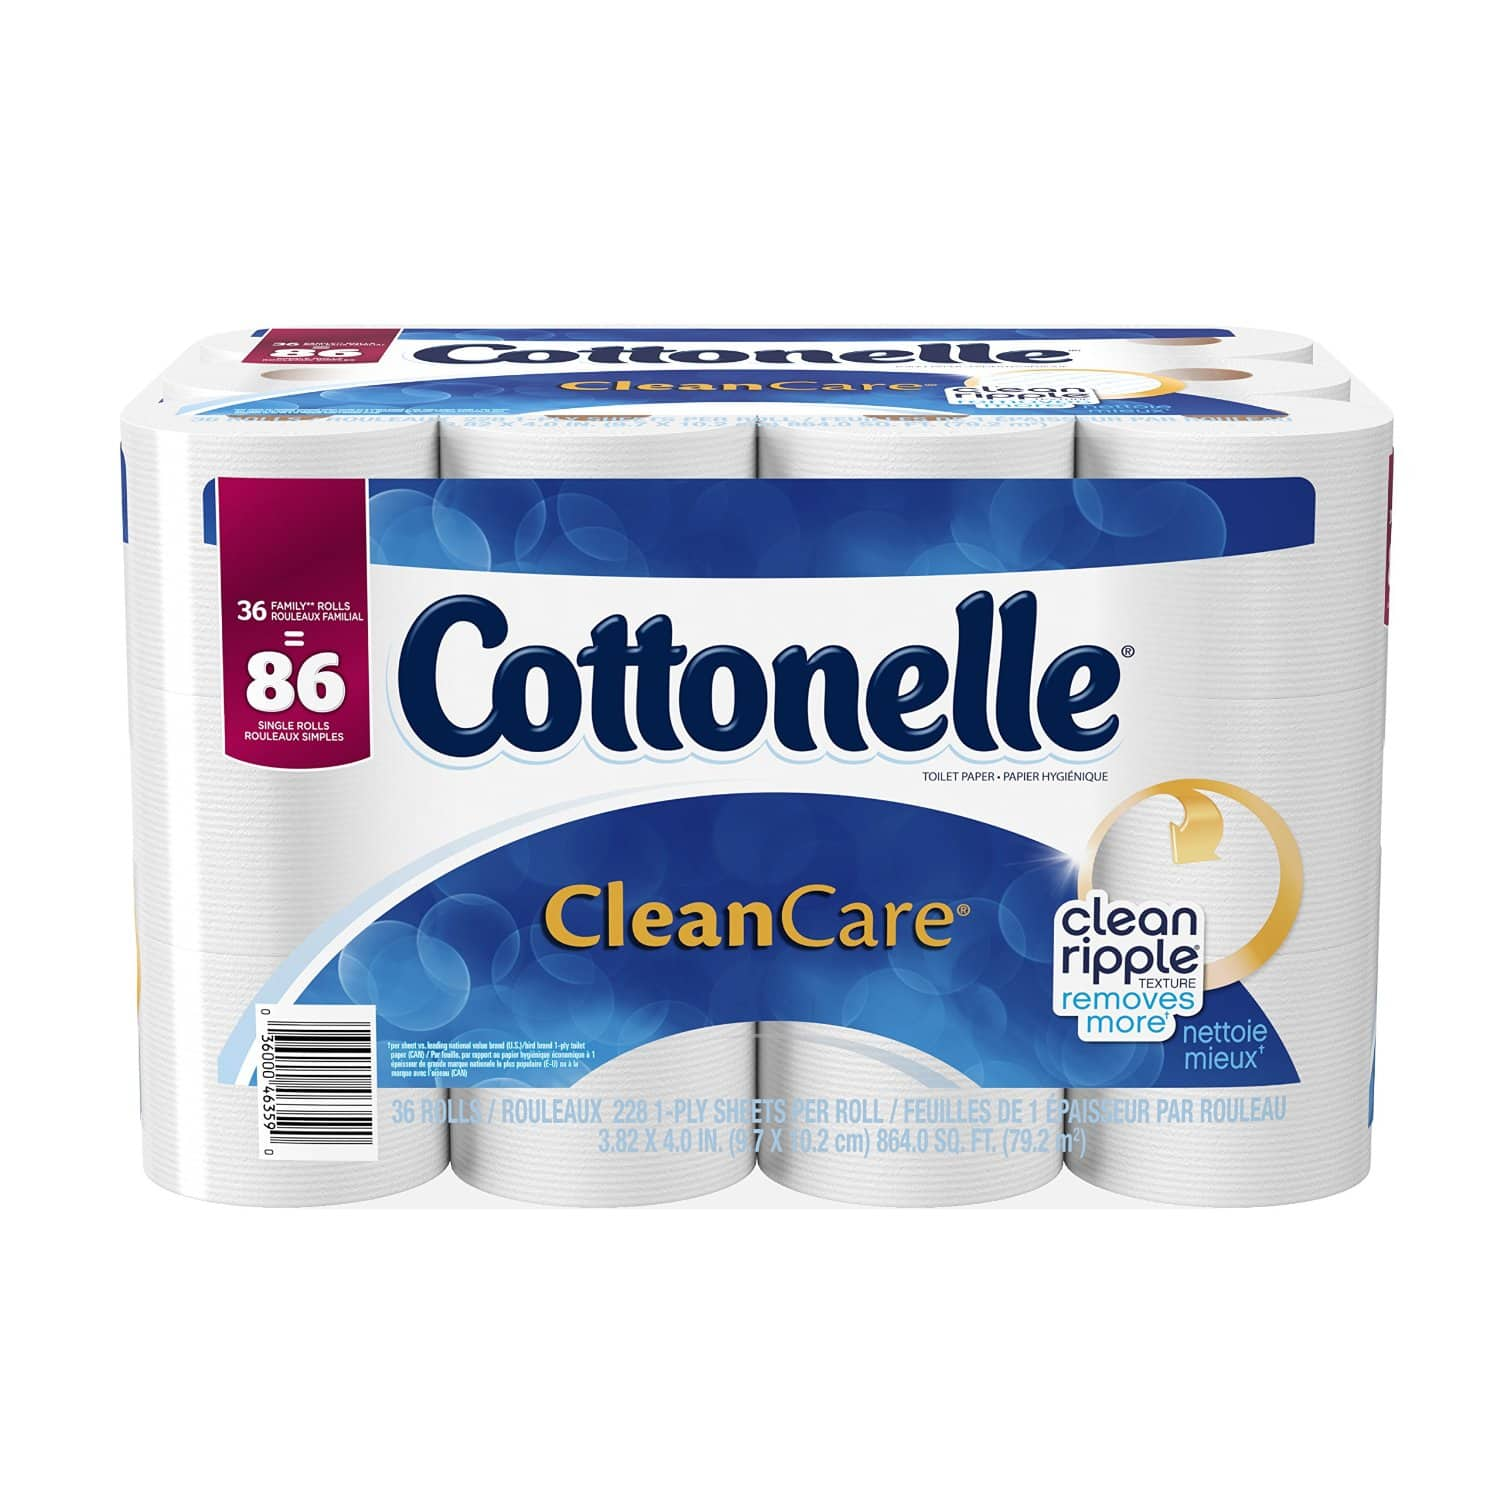 Cottonelle CleanCare Toilet Paper Bath Tissue, 36 Family Rolls (86 regular rolls) as low as $12.32 S&S Amazon Prime Day Deal